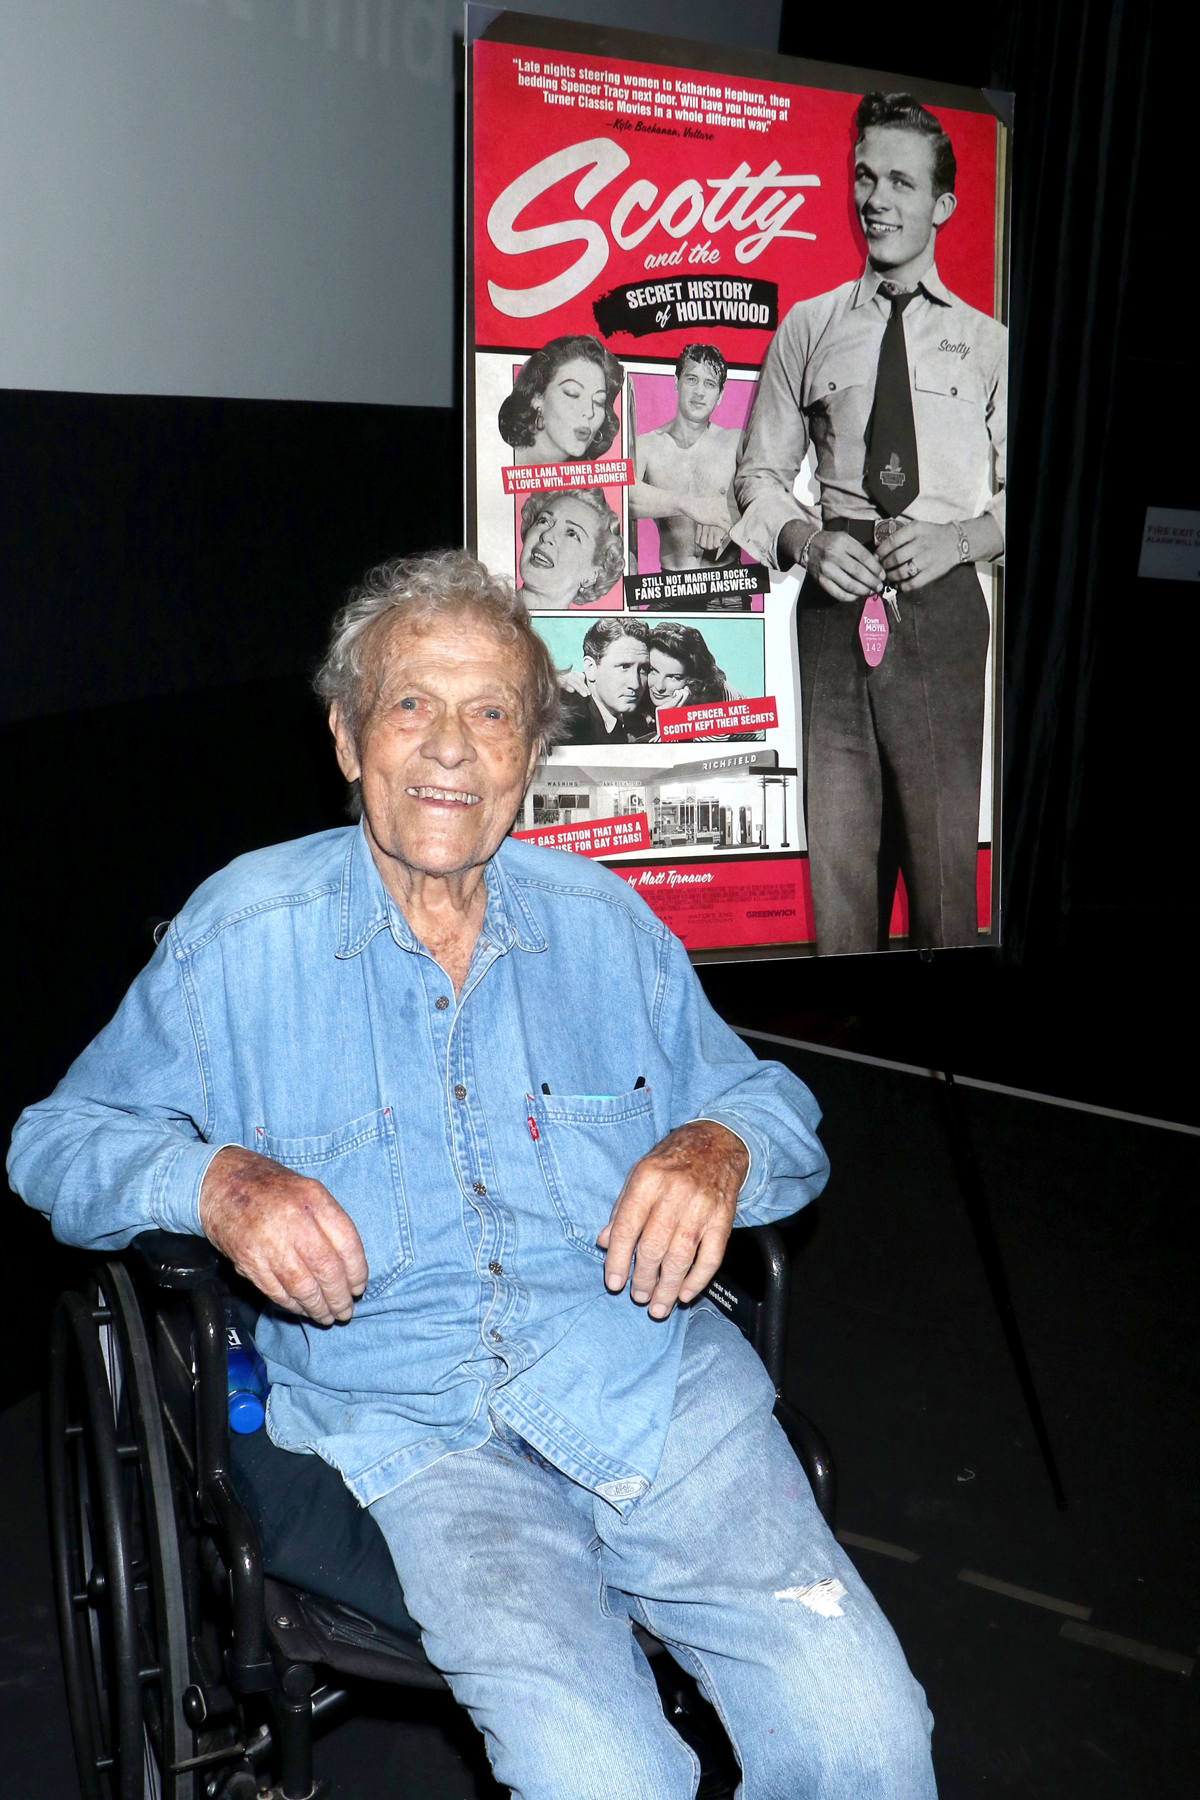 Scotty Bowers'Scotty and the Secret History of Hollywood' film screening, after party, New York, USA - 04 Aug 2018